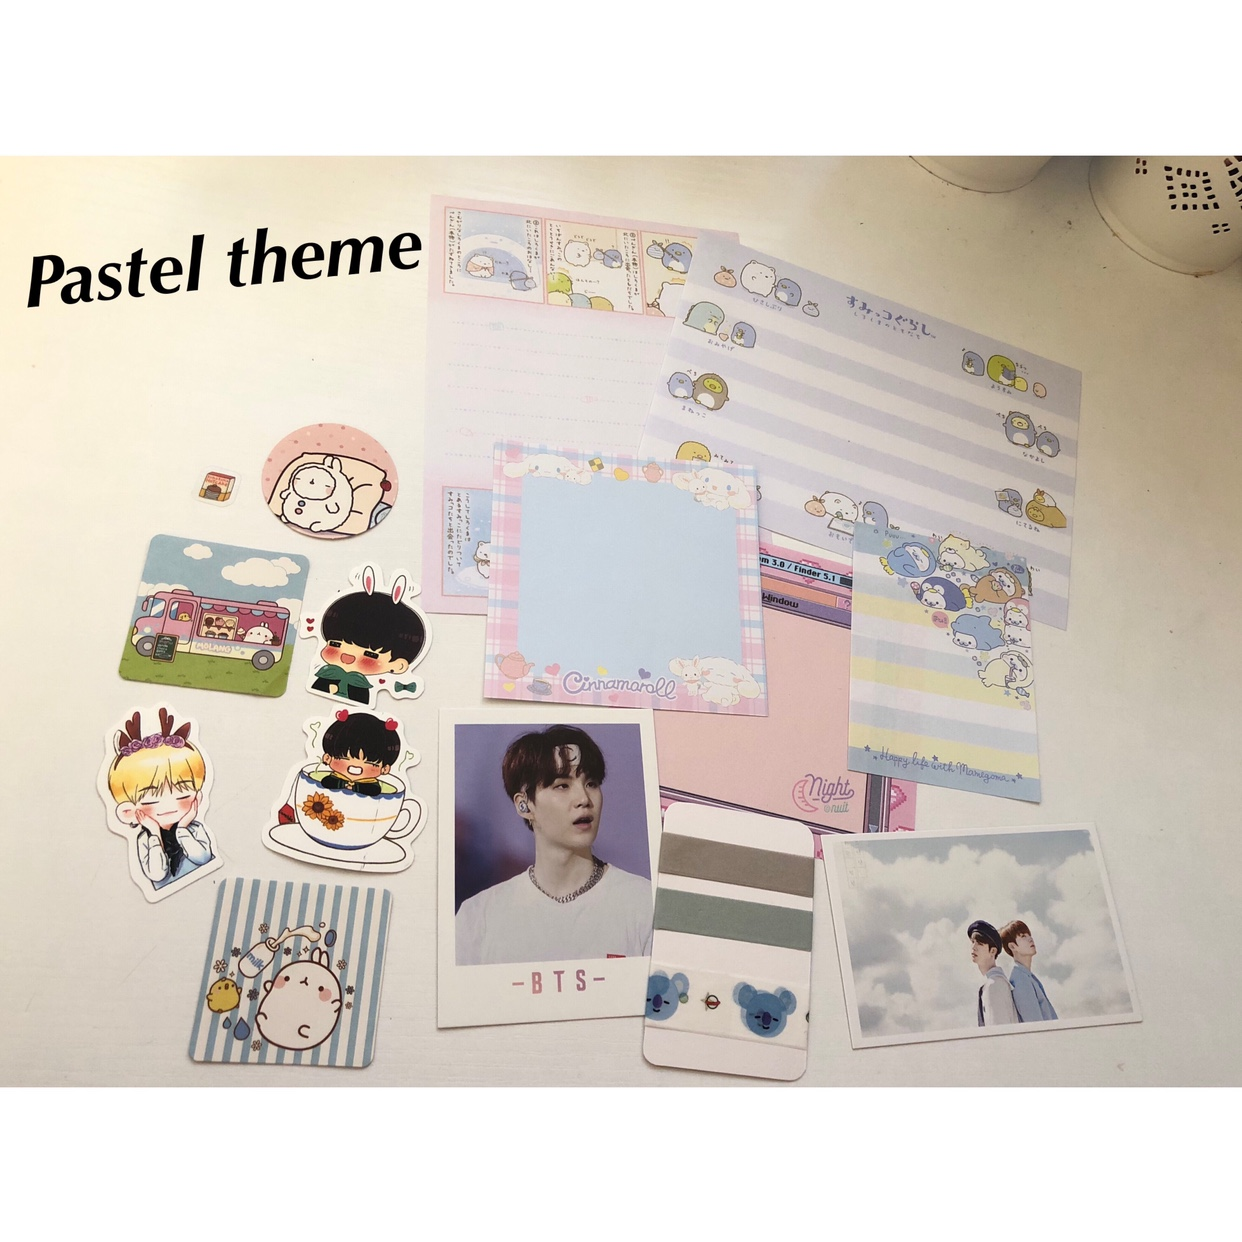 ♡ bts stationary pen pal sets ♡ good for penpals or    - Depop